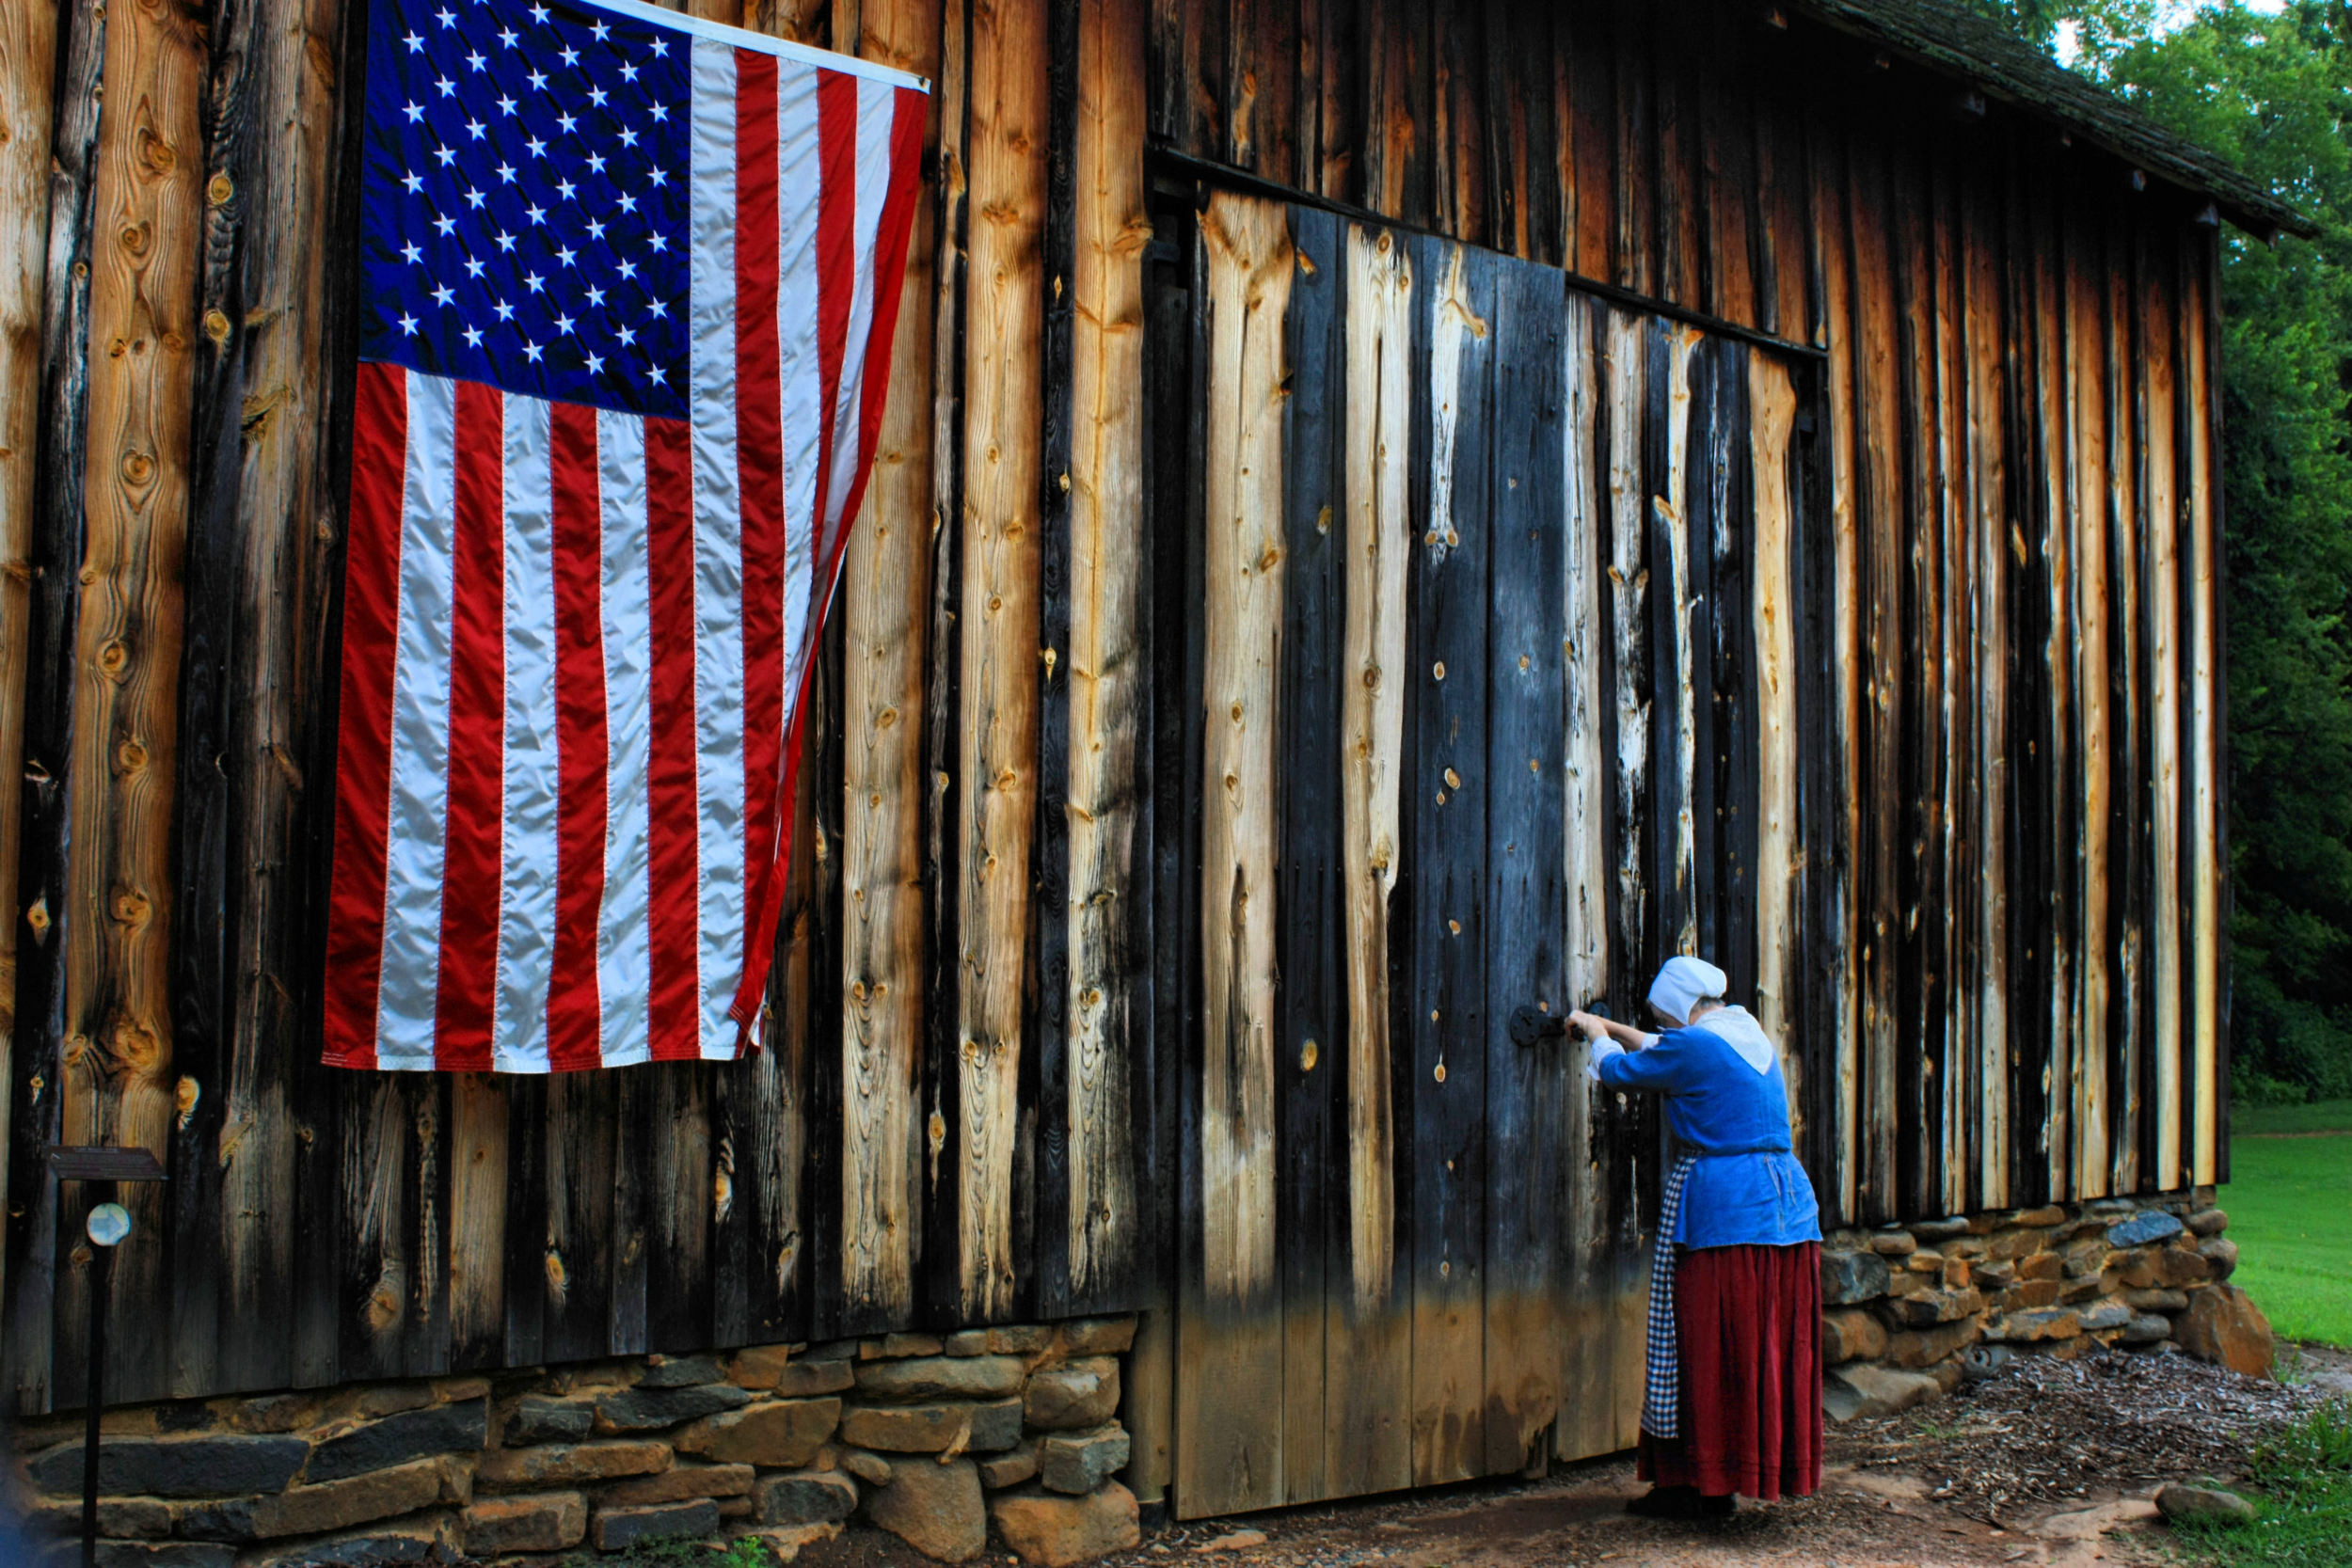 A woman dressed as a Moravian wandered into the shot as I was trying to picture this huge Moravian shed with an American Flag.  She made the shot more poignant.